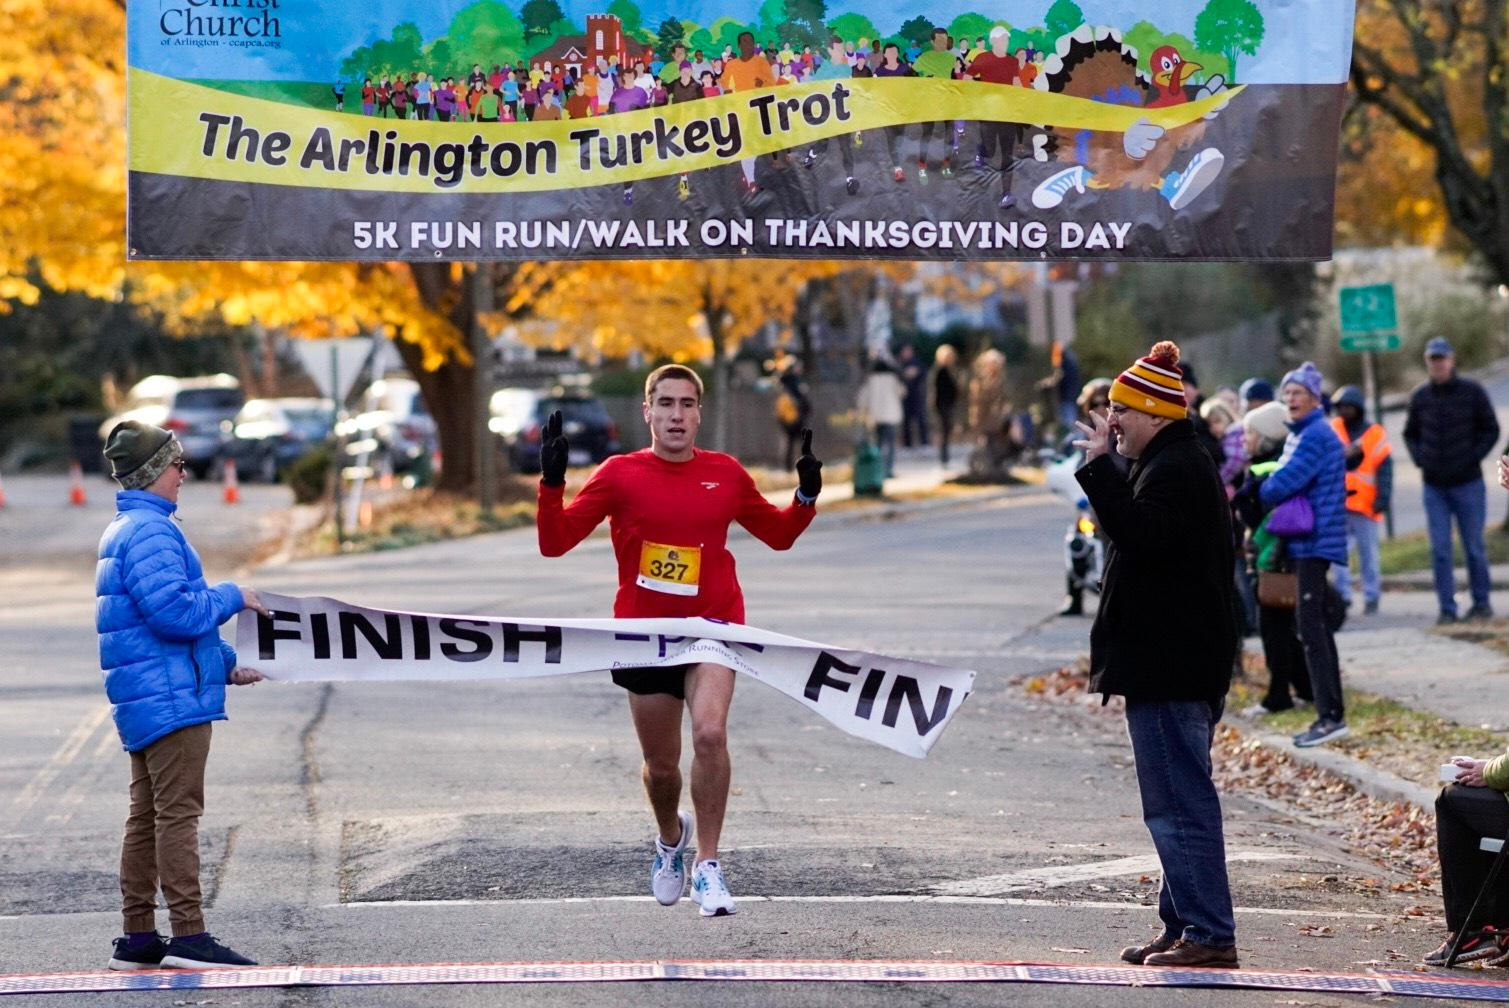 The Arlington Turkey Trot donates proceeds to six local charities, so you're doing some good for your body AND for your community. (Image Mark Riley/ Arlington Turkey Trot)<p></p>